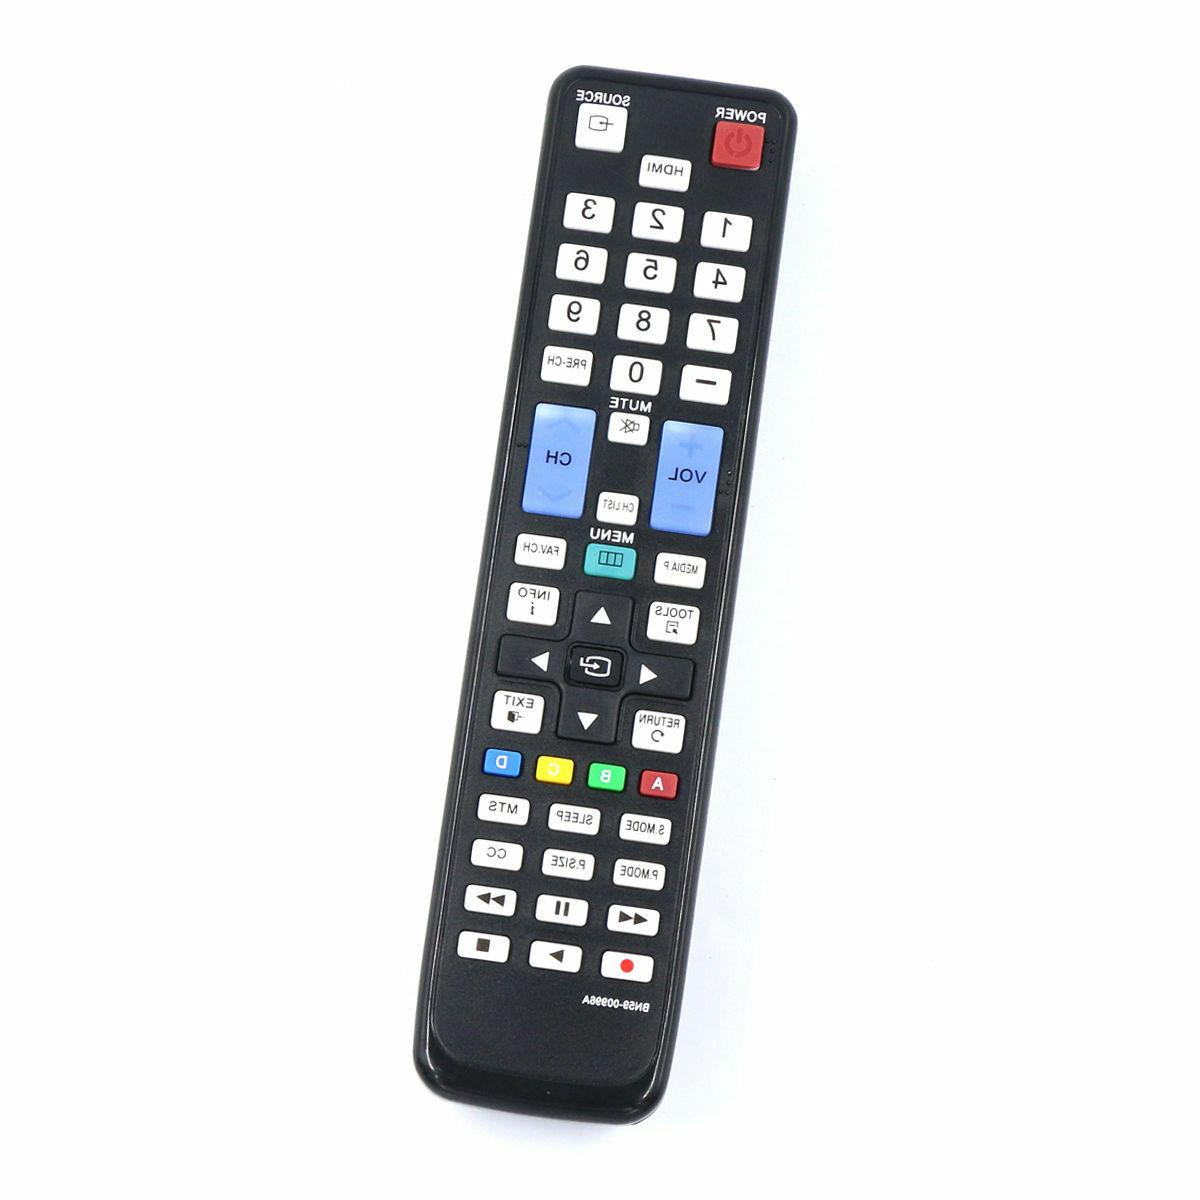 new bn59 00996a remote control for samsung